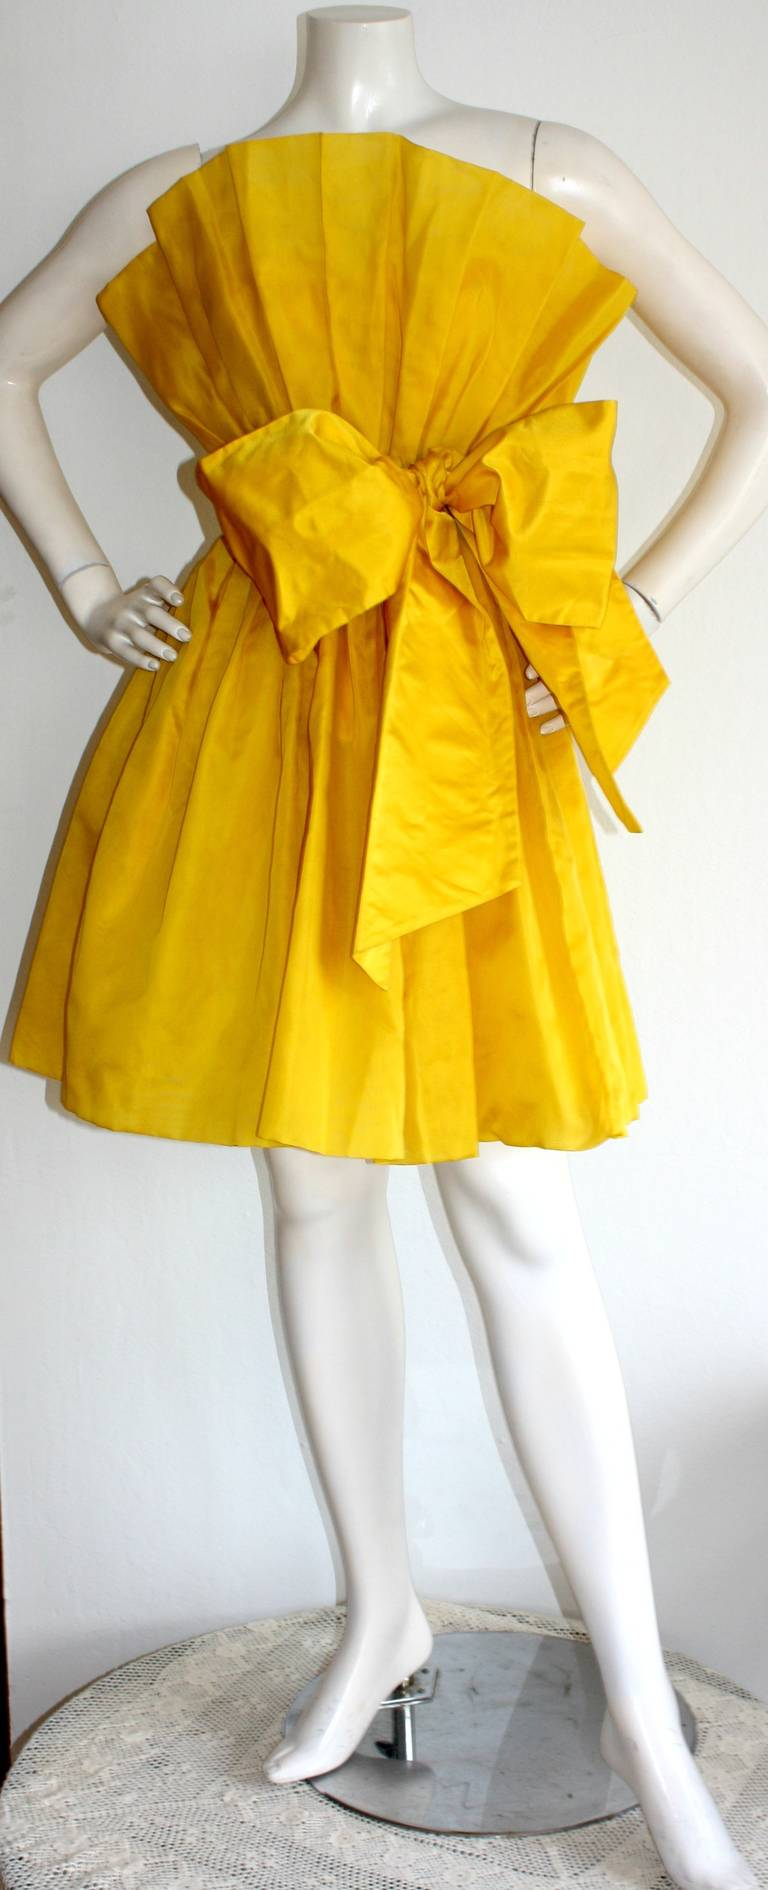 James Purcell Stunning Vintage Origami Fan Dress 2